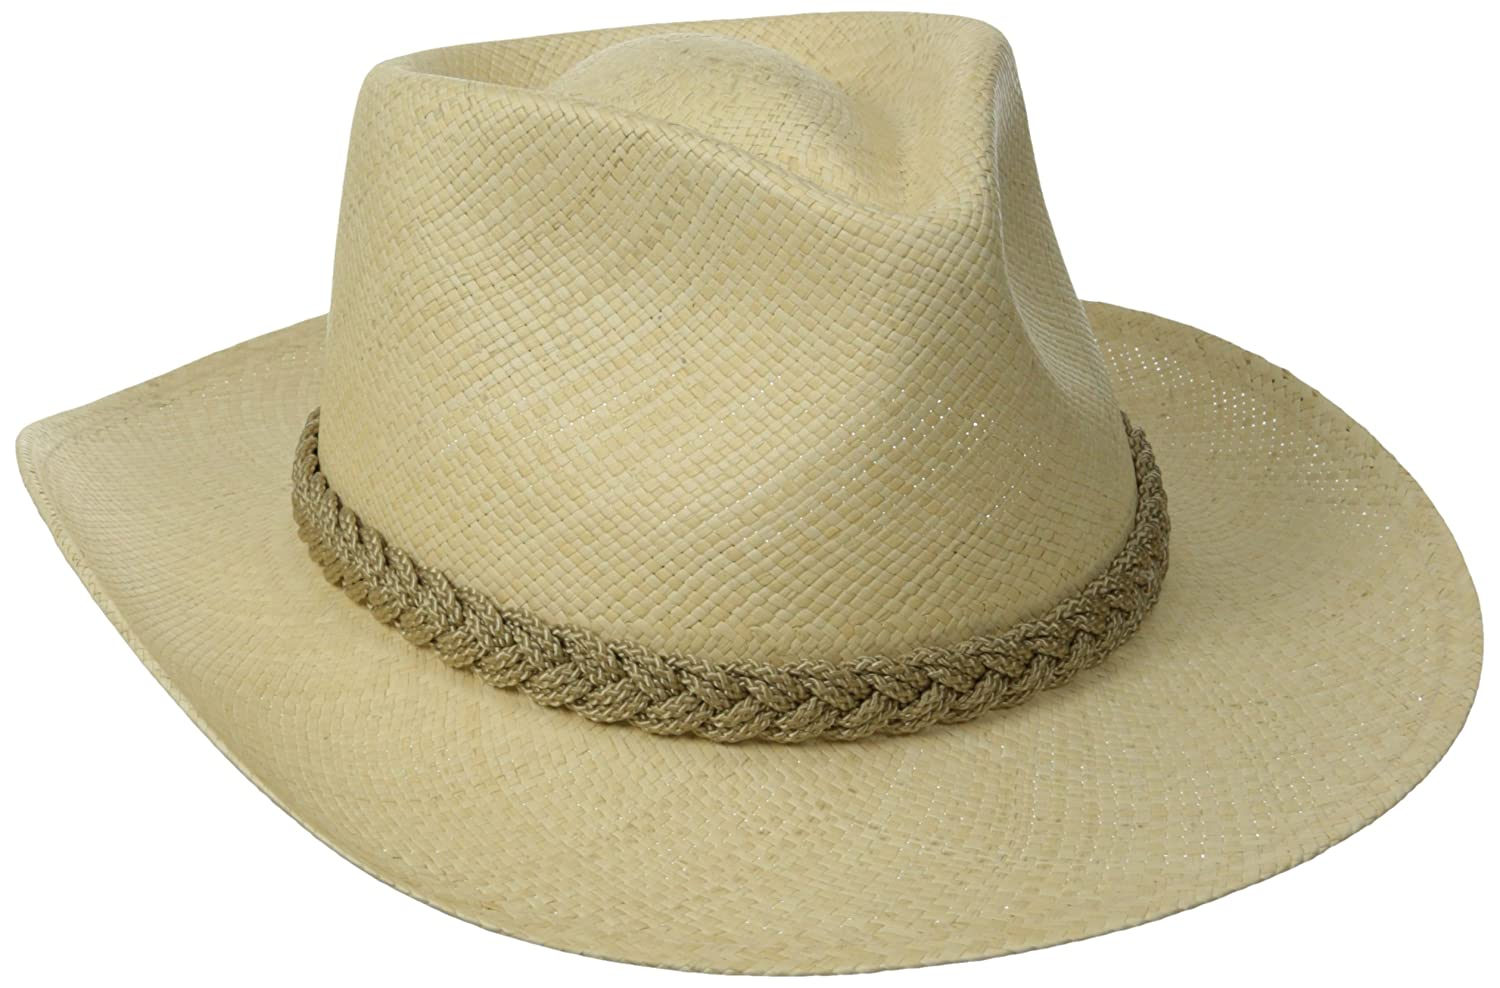 Scala Panama Men's Panama Outback Hat Dorfman Pacific Co. Inc P122